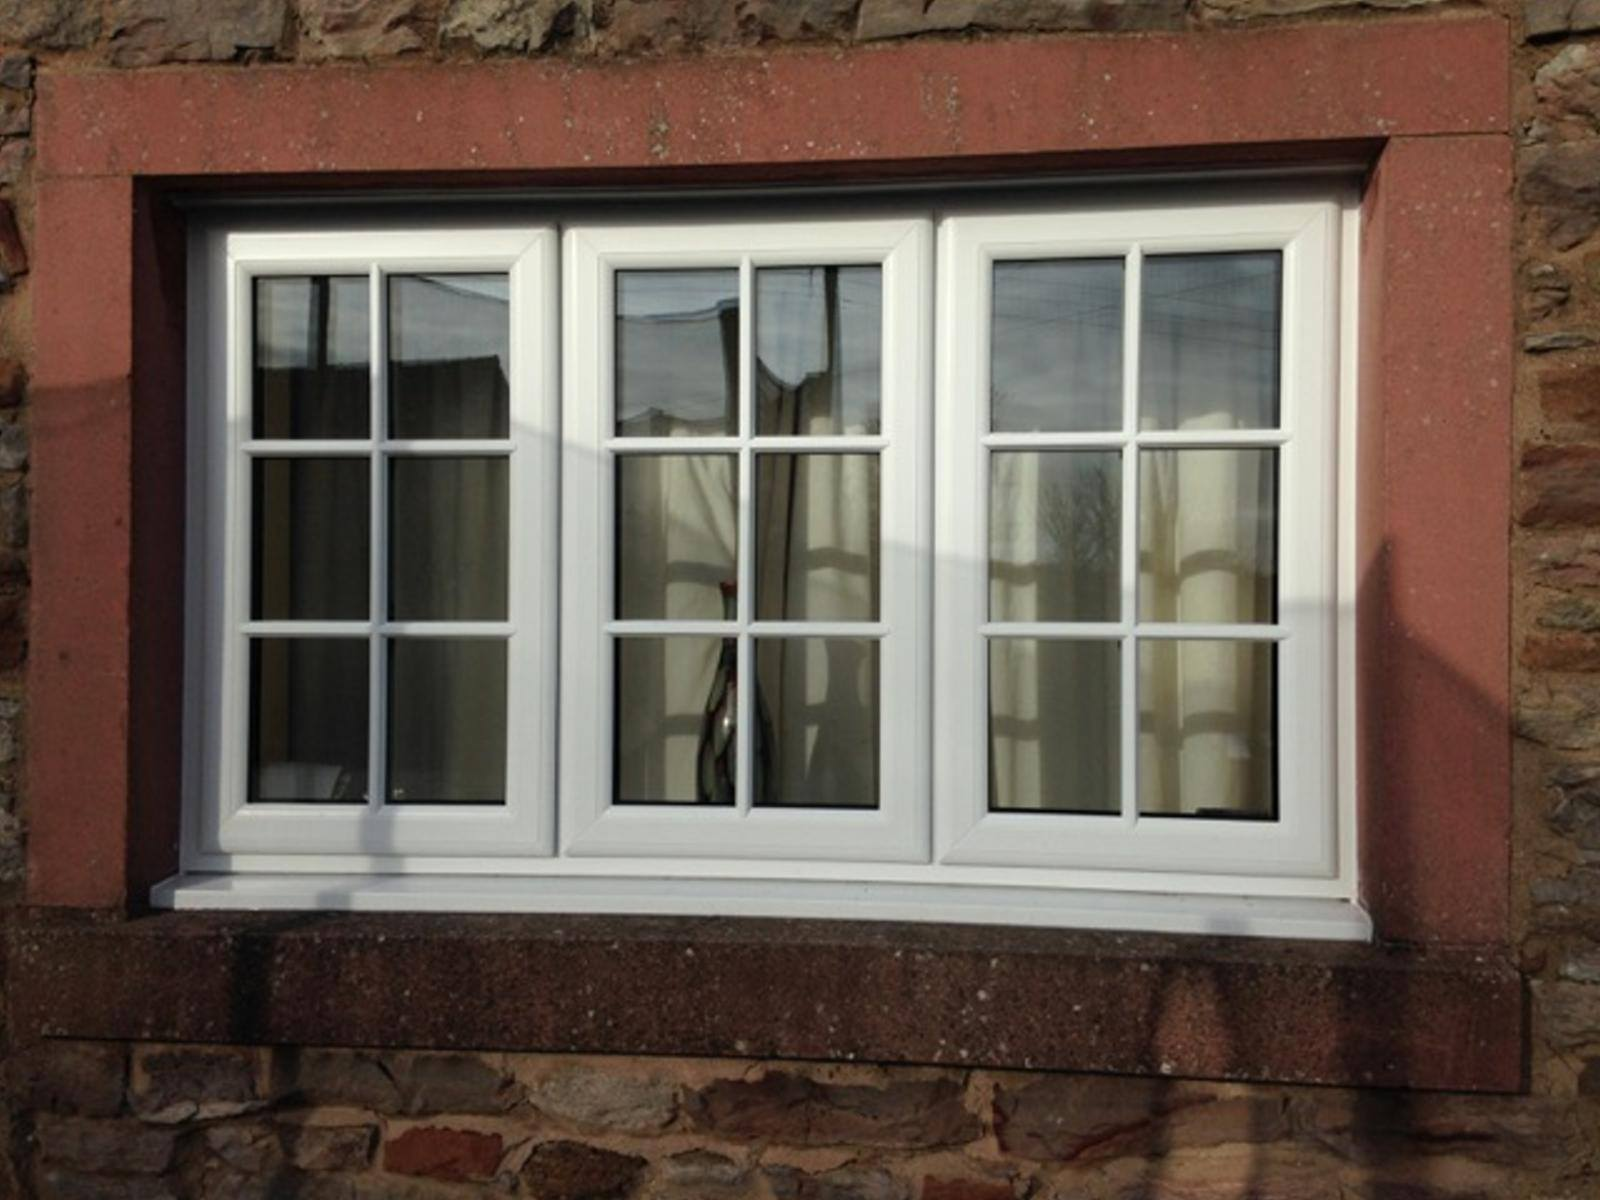 White Pvc Window Equal Gl Sizes With Central Dummy Sash And 2 Side Openers